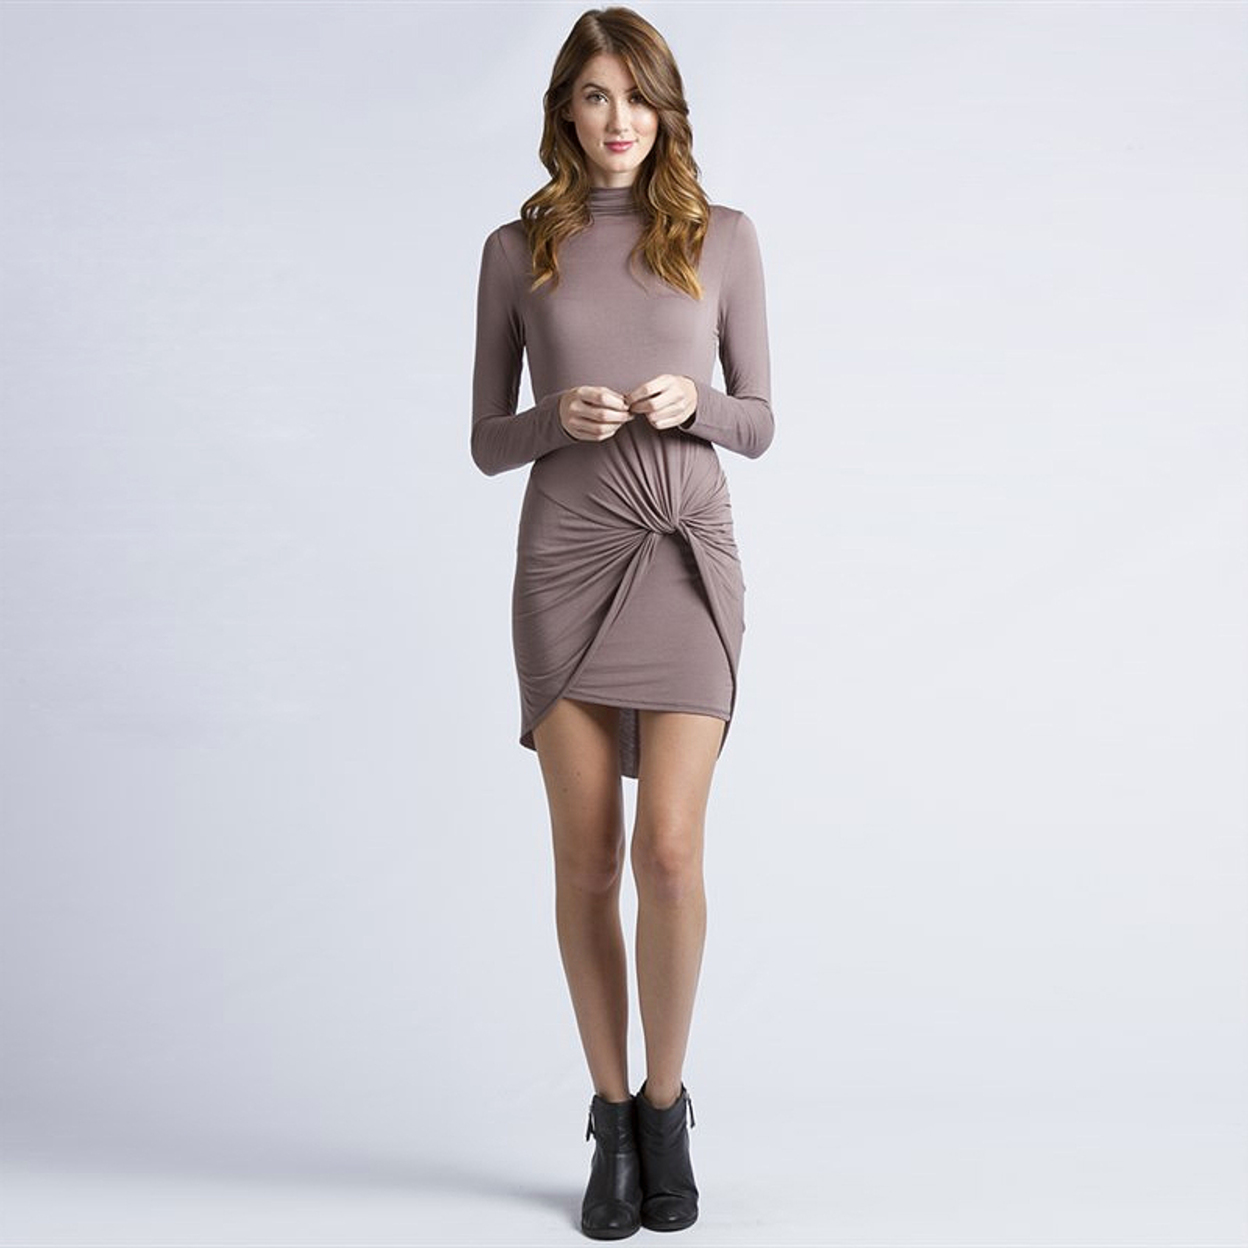 Wrapped Twisted Long Sleeve Micromodal Jersey Dress - Small, Mocha 545d2f7e683d6f3453000965